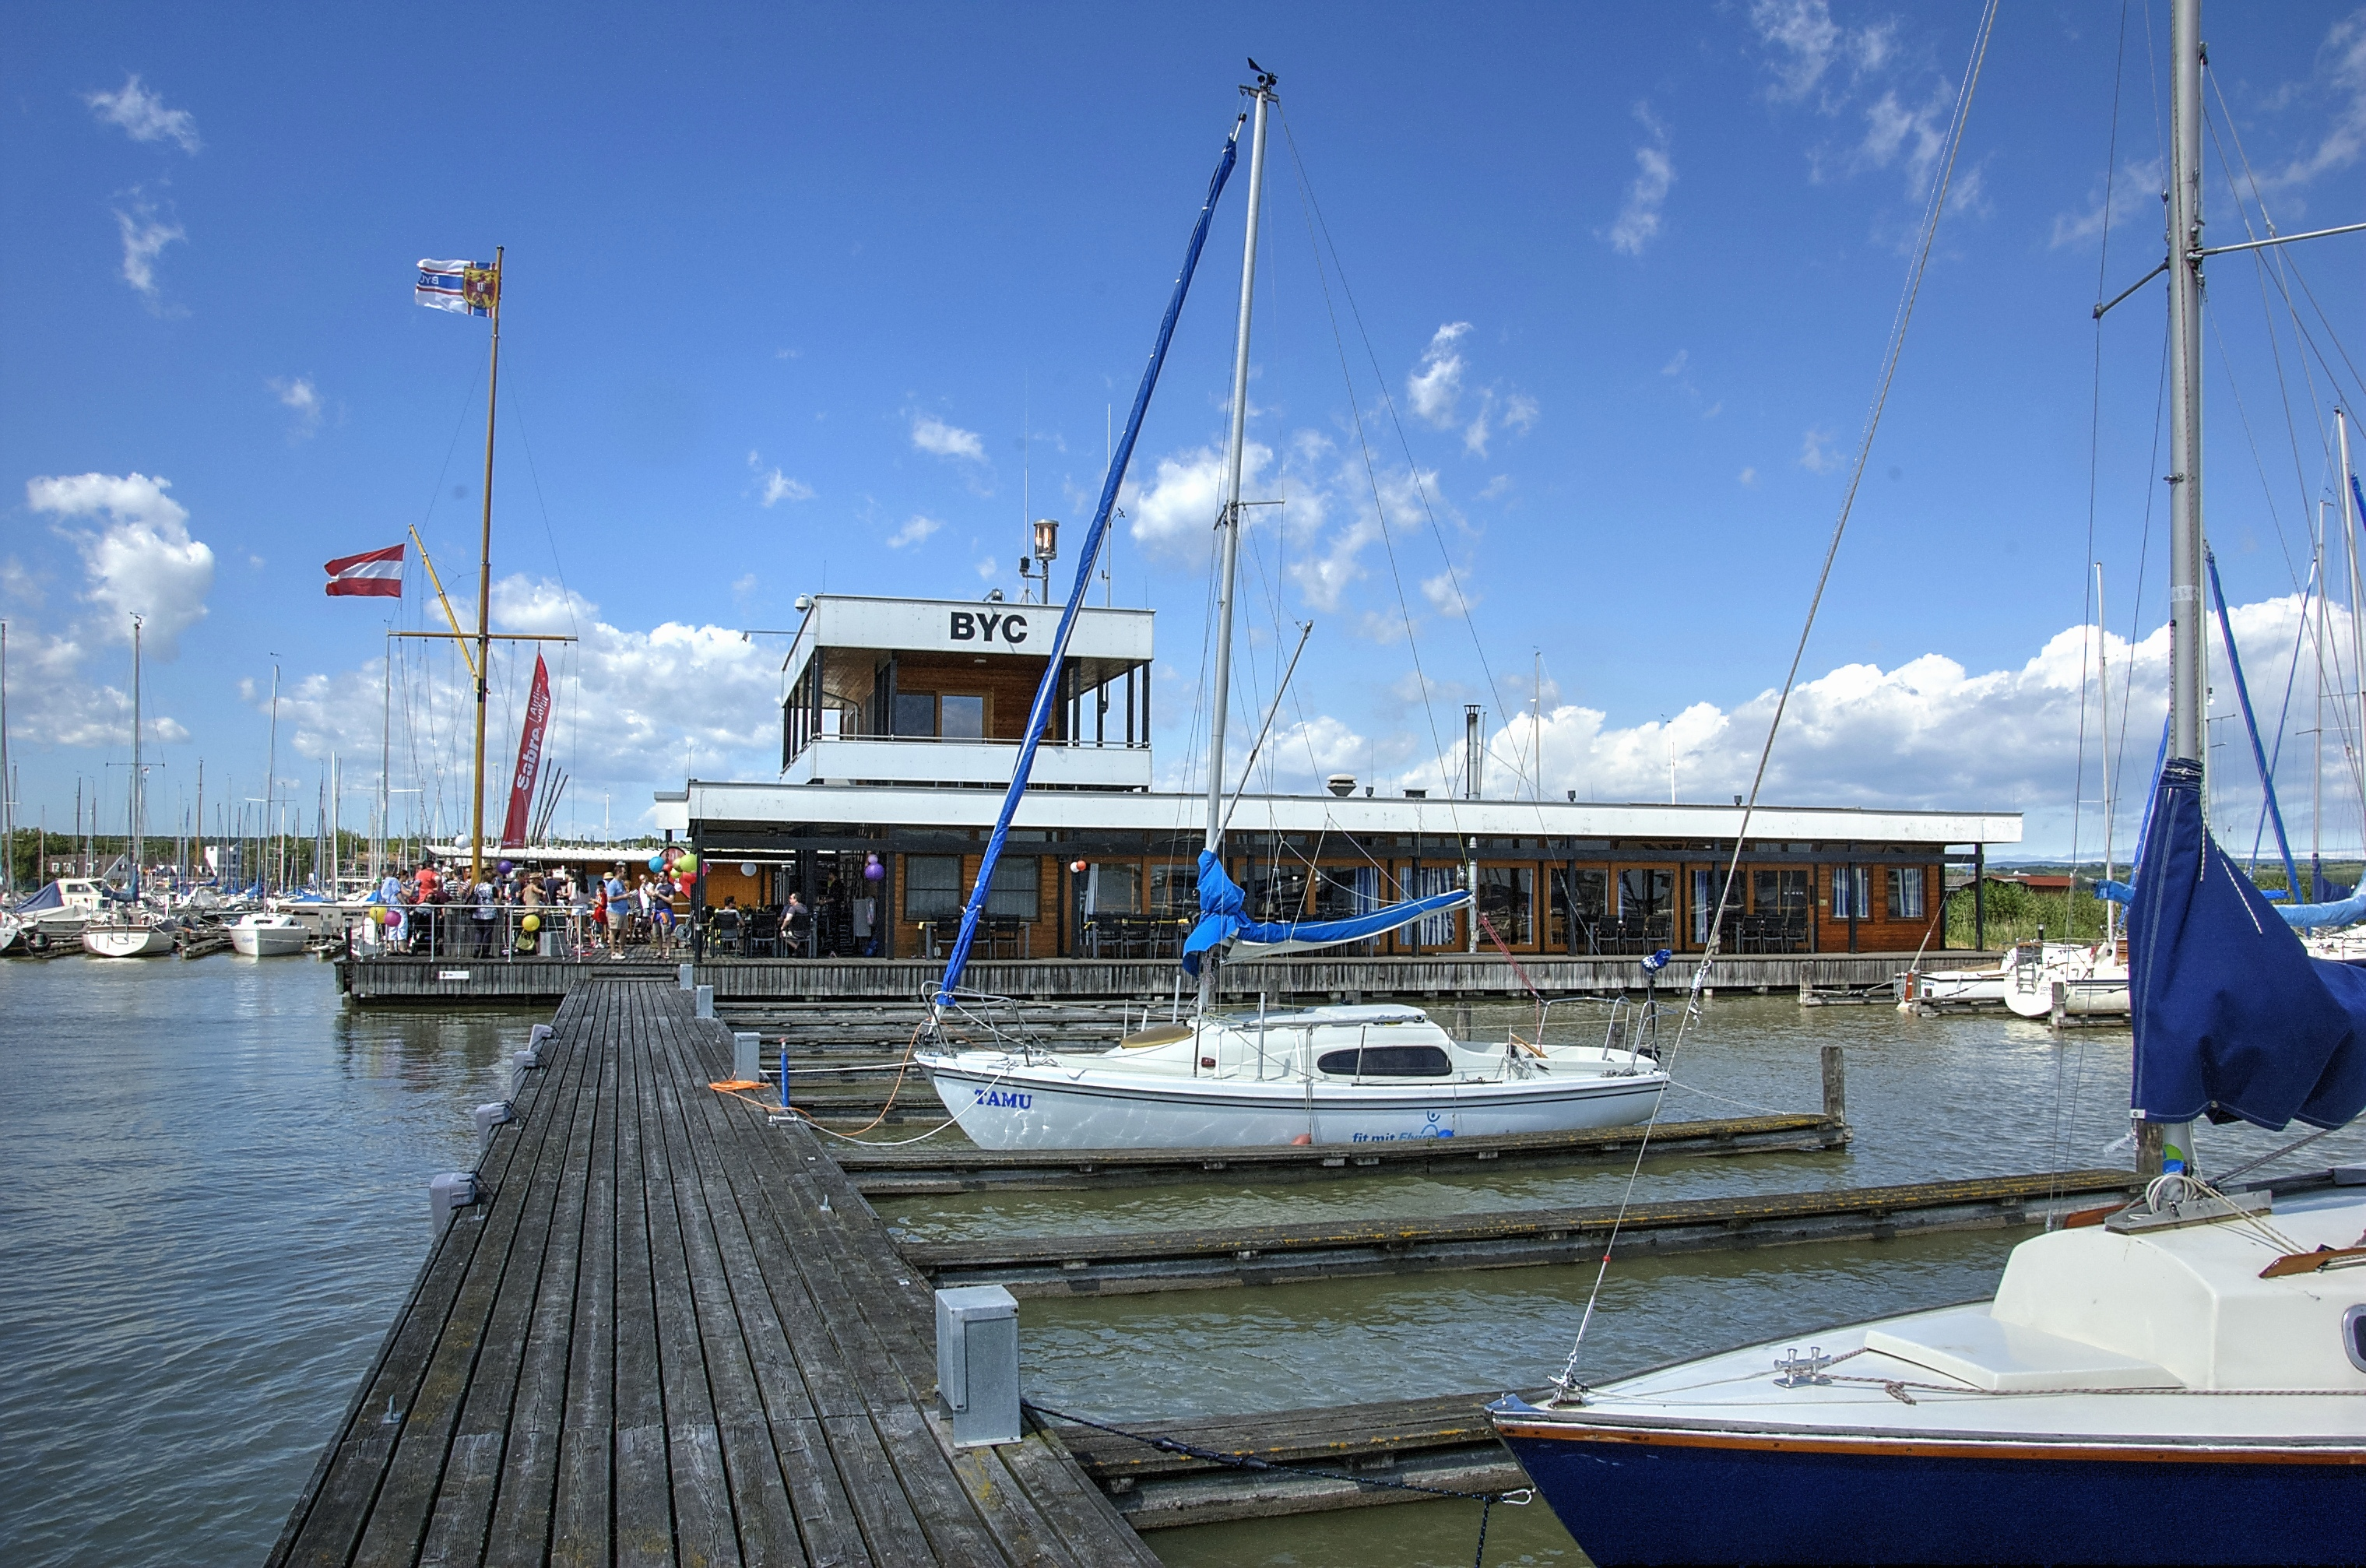 Rust neusiedlersee  File:Yachting at Rust am See (Neusiedlersee) 02.jpg - Wikimedia ...